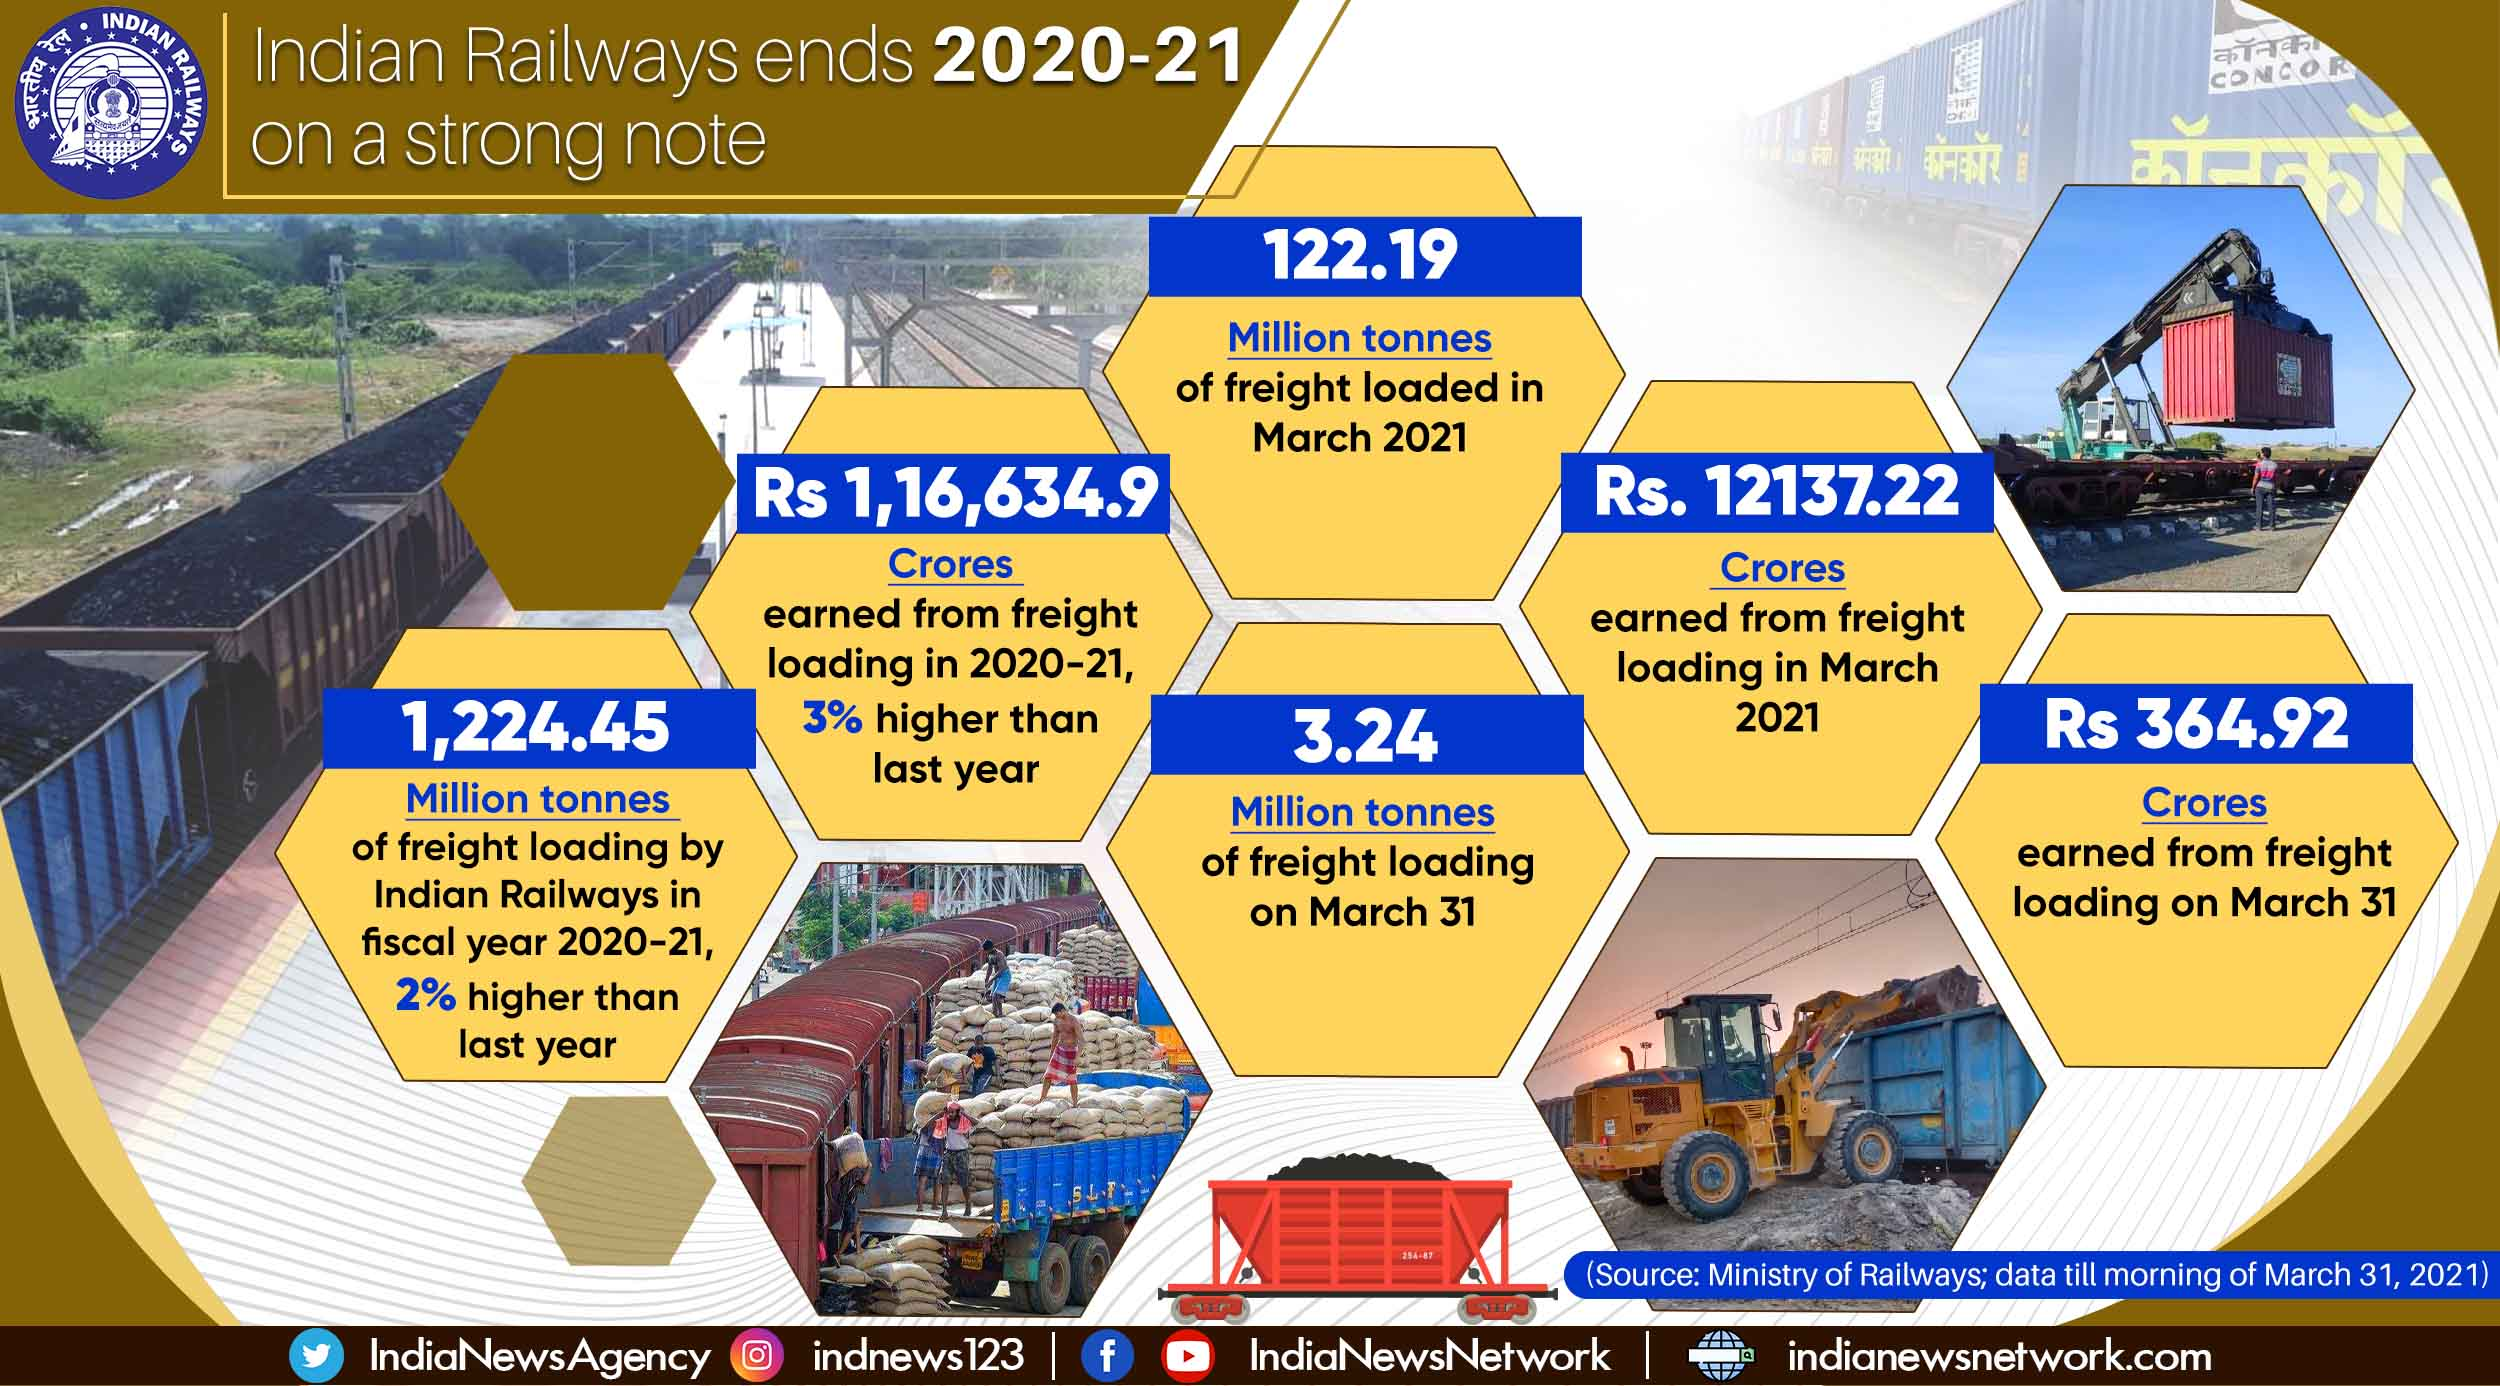 Indian Railways closes year with record freight loading, earnings